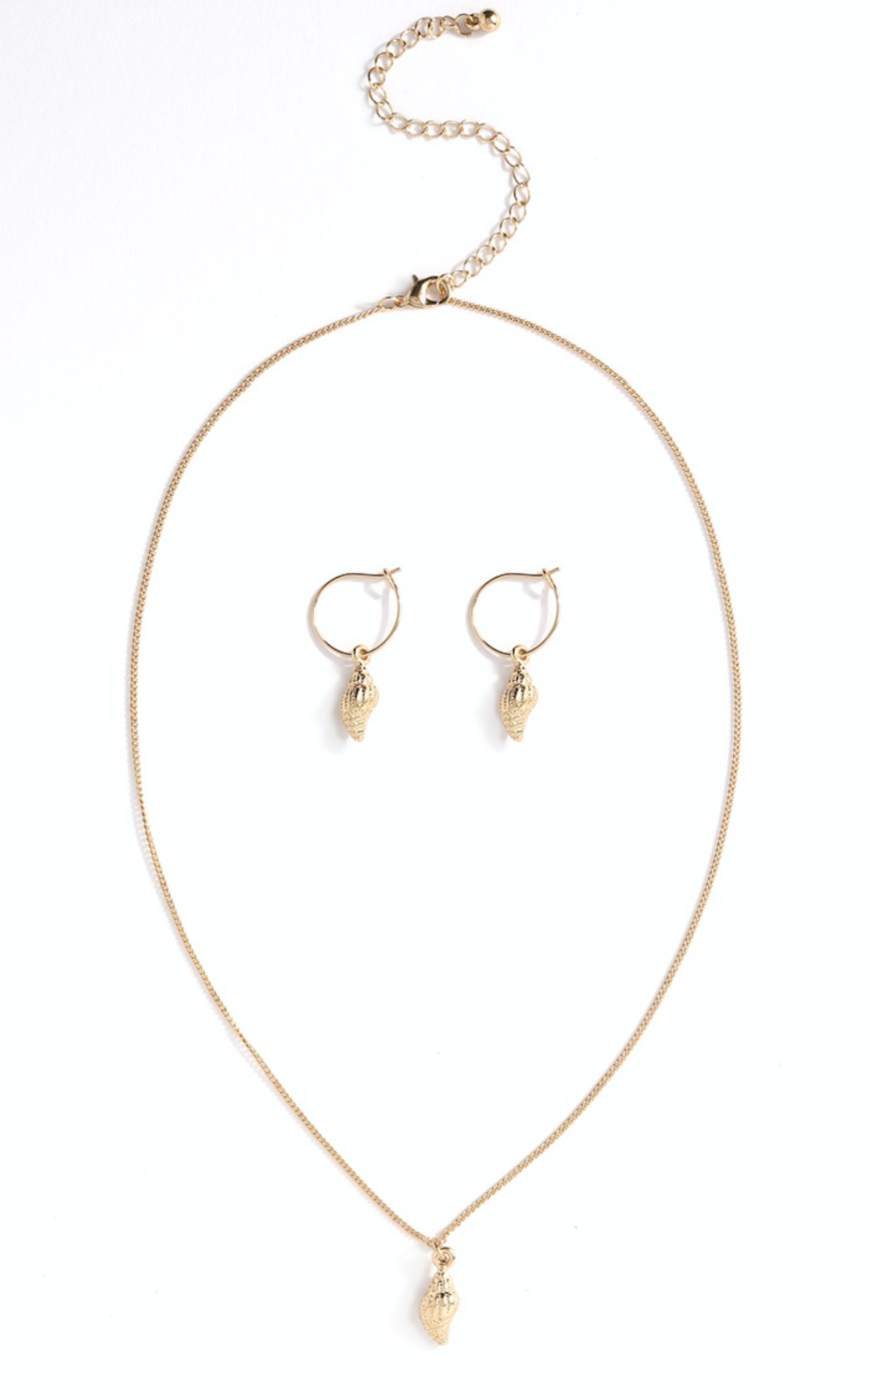 Penneys has released some surprisingly expensive-looking jewellery - for €3